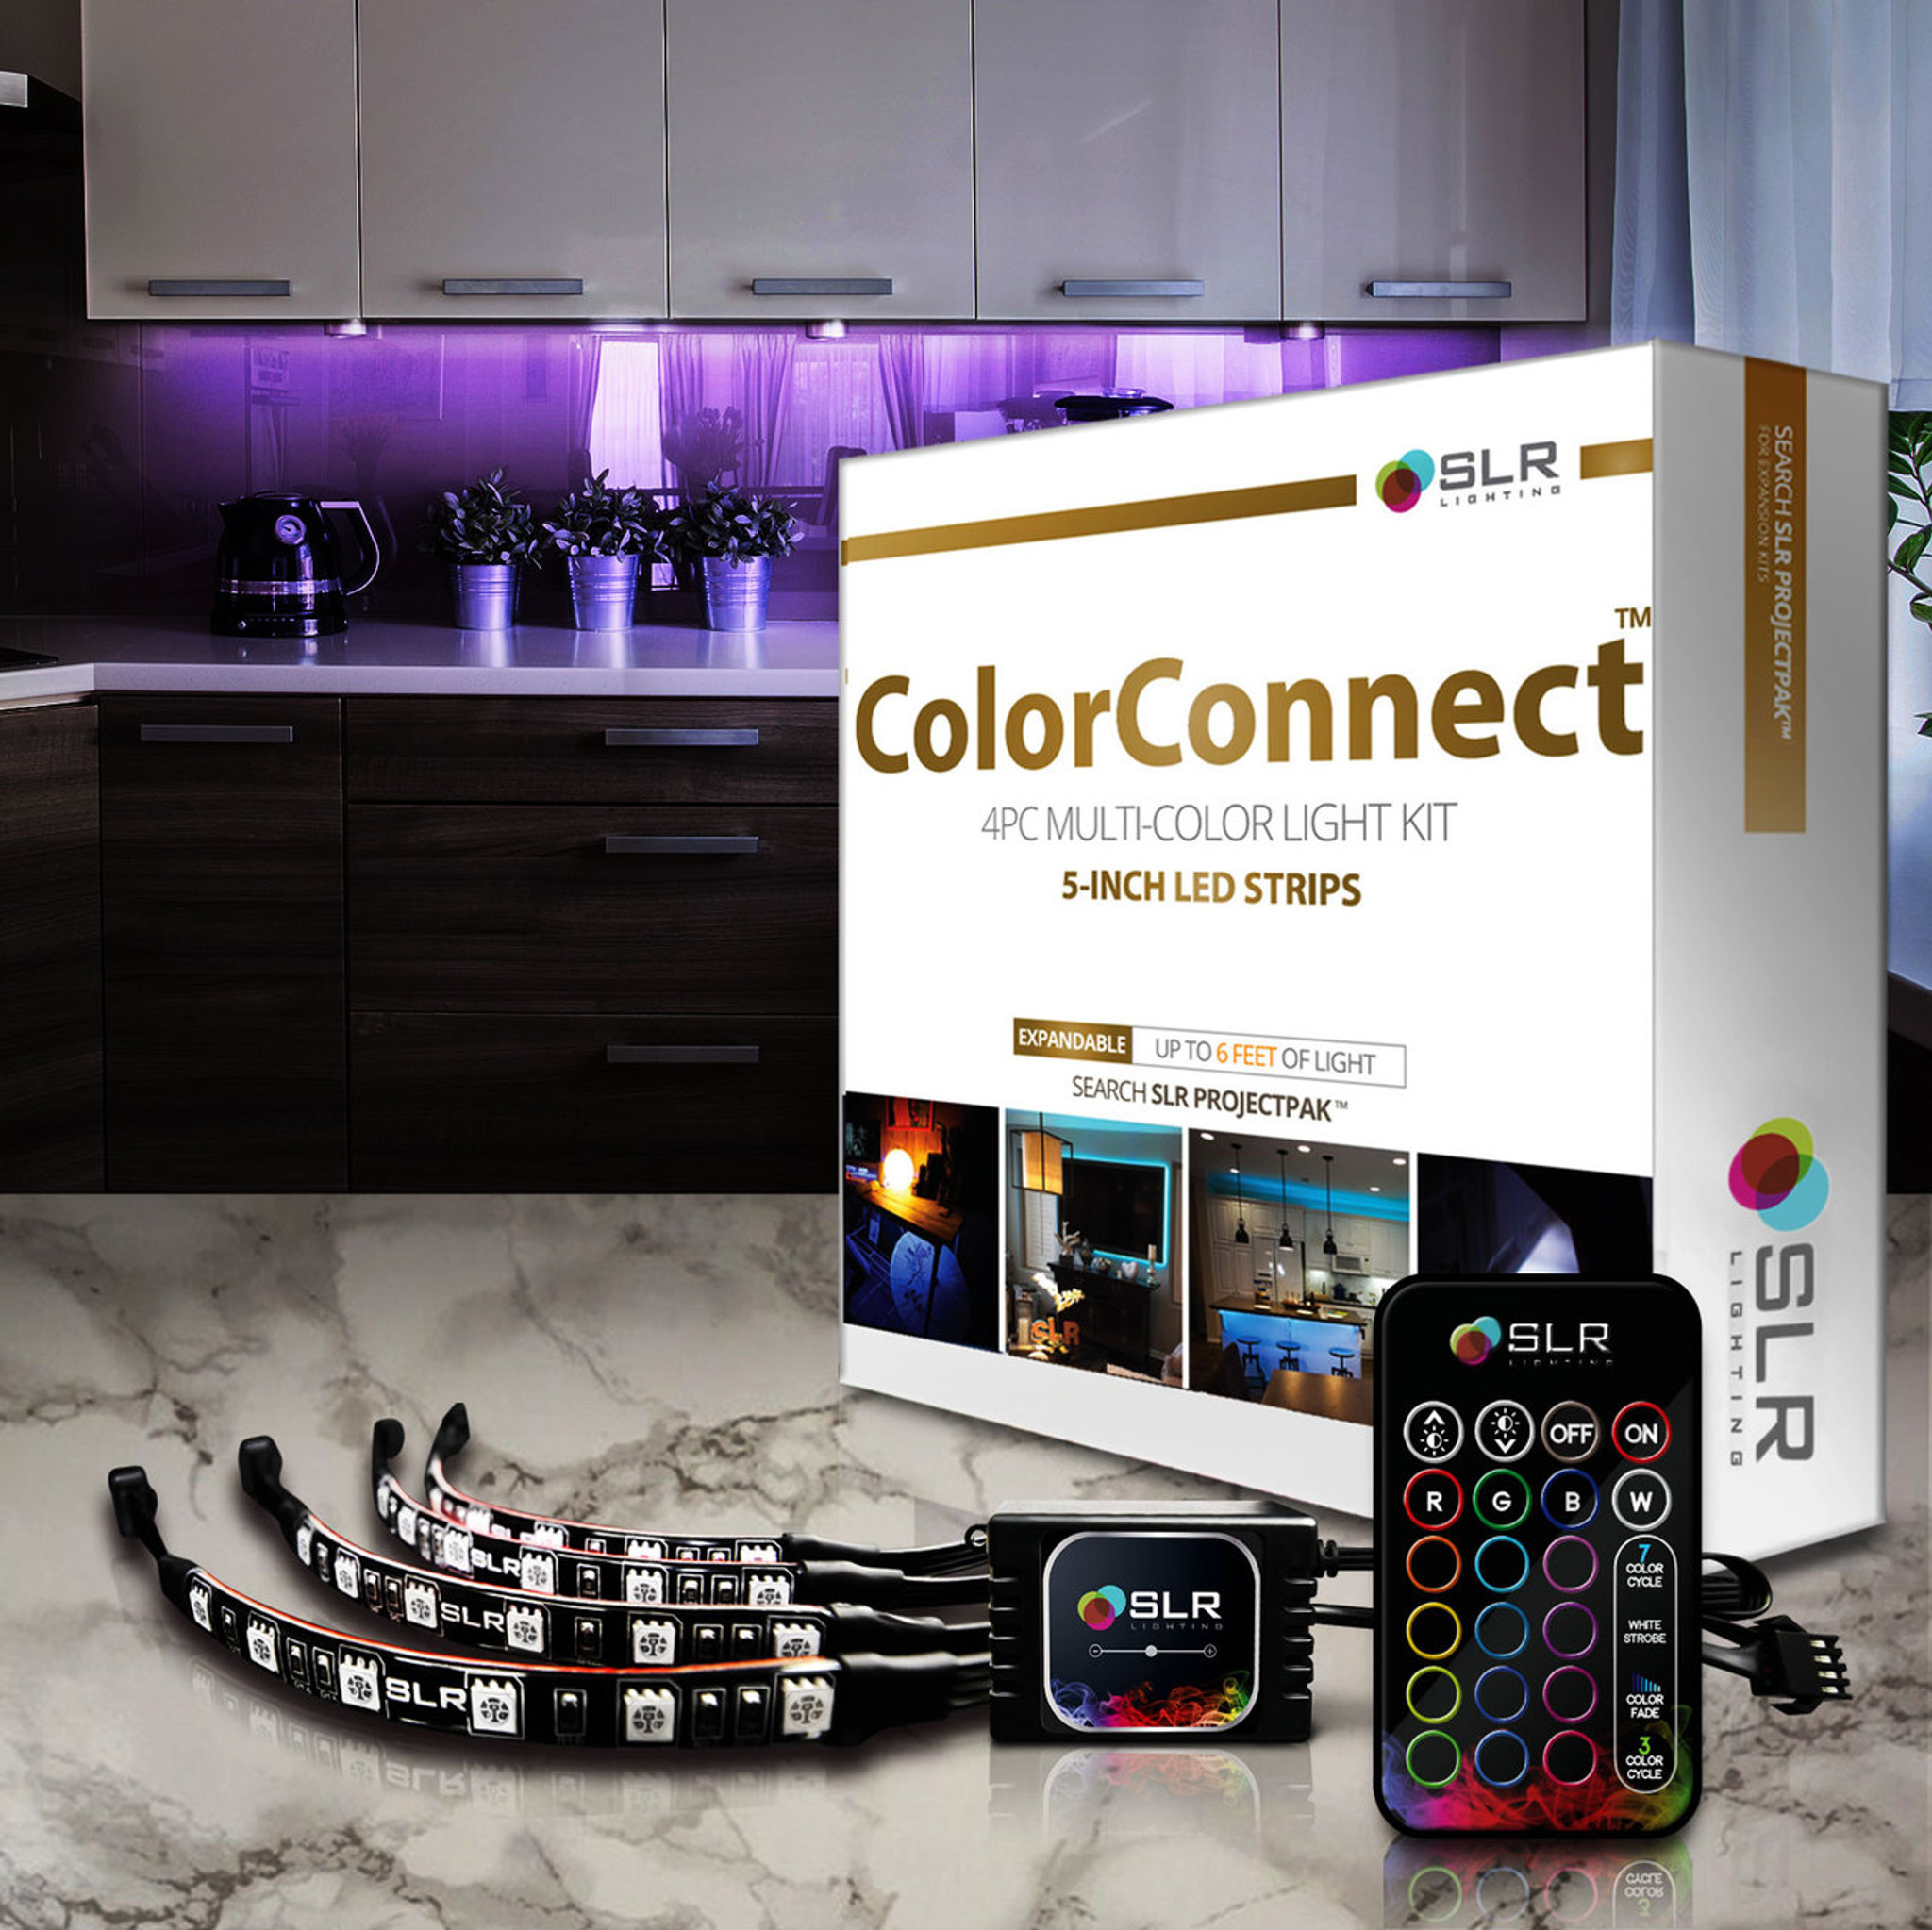 colorconnect kitchen lighting kit with 5 inch led strips remote motion sensor